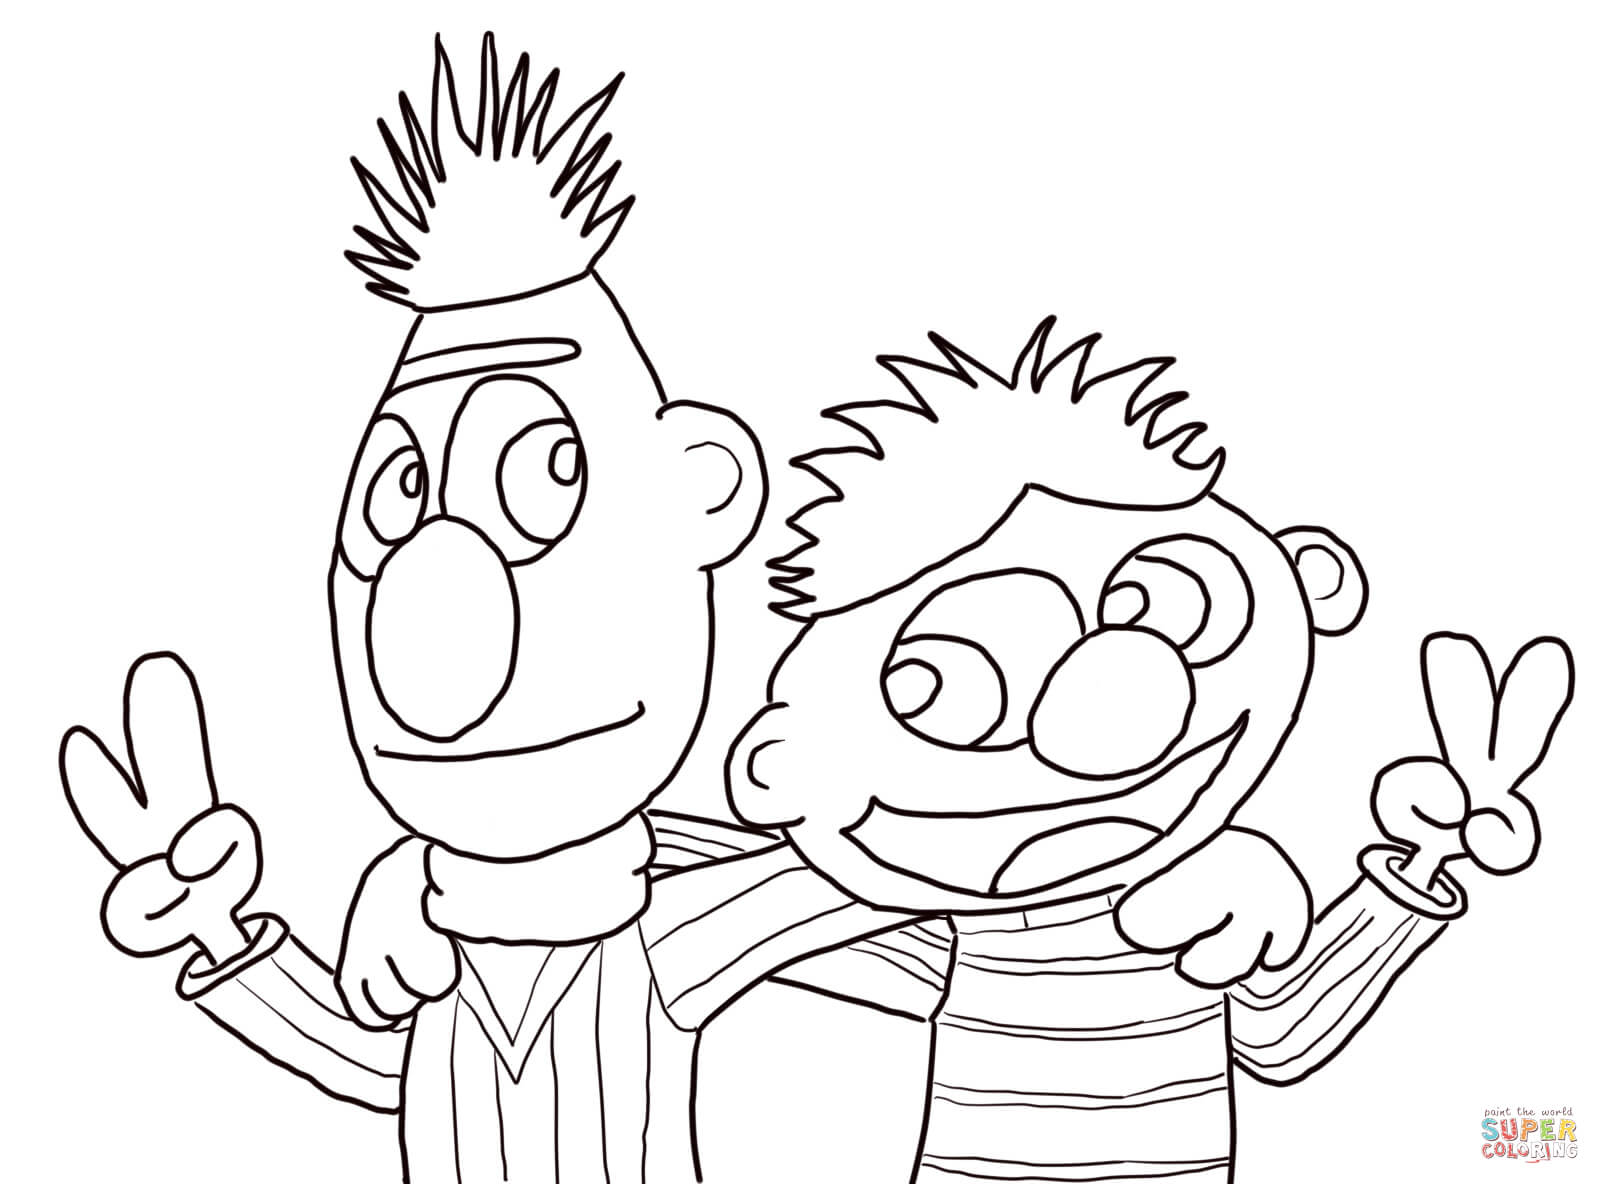 Cool Bert and Ernie coloring page | Free Printable Coloring Pages